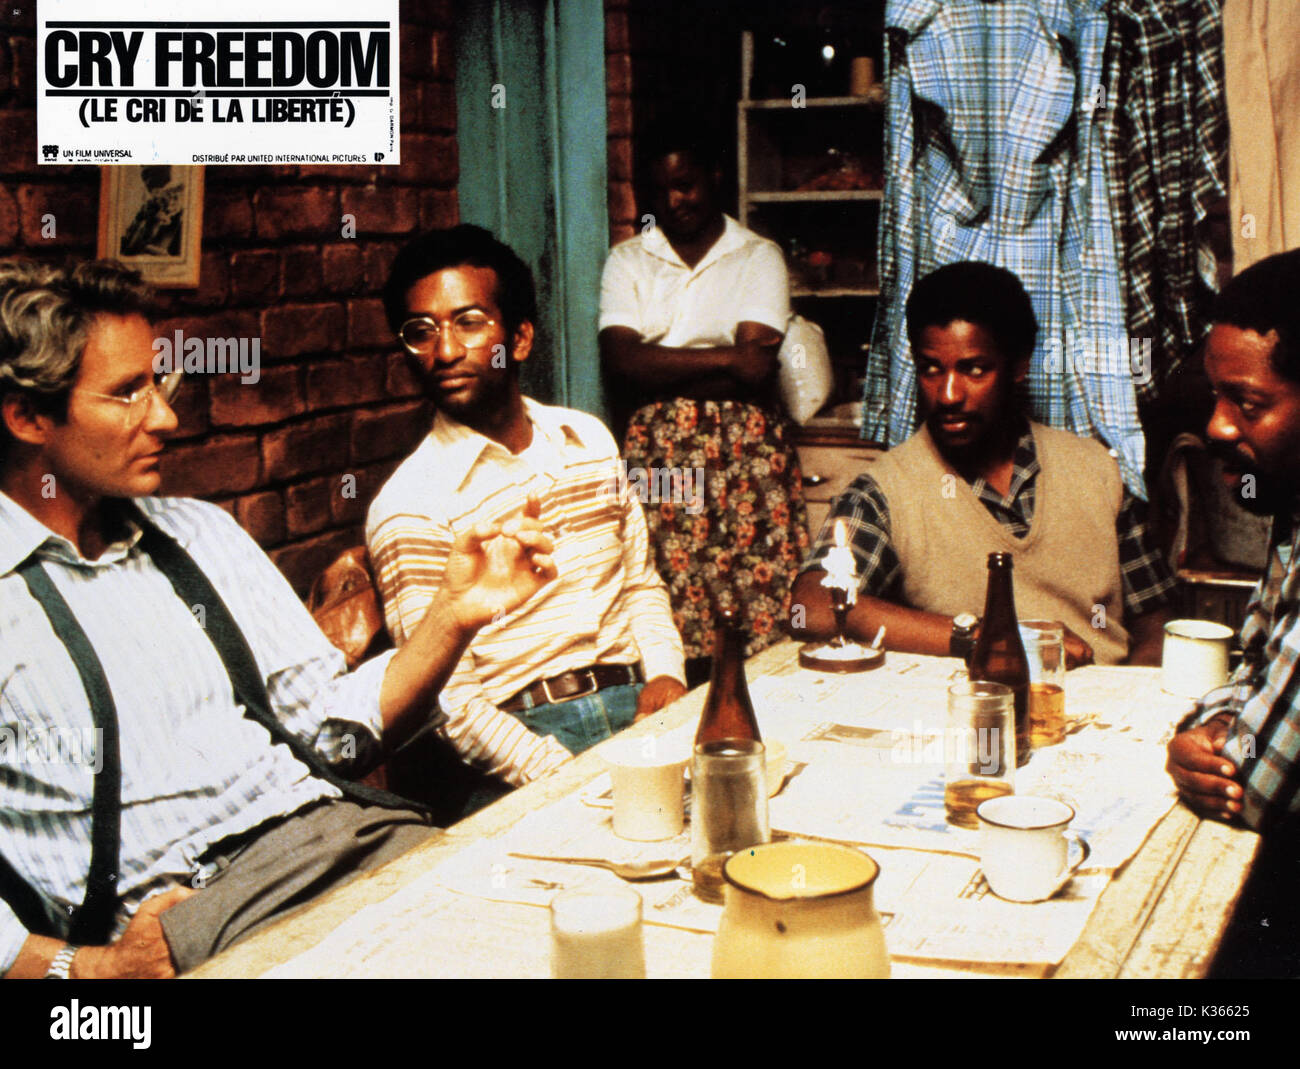 a film study on cry freedom [cert pg, 157 mins] based on the true story of the friendship between steve biko, a black activist, and donald woods, a south african journalist donald woods is chief editor.